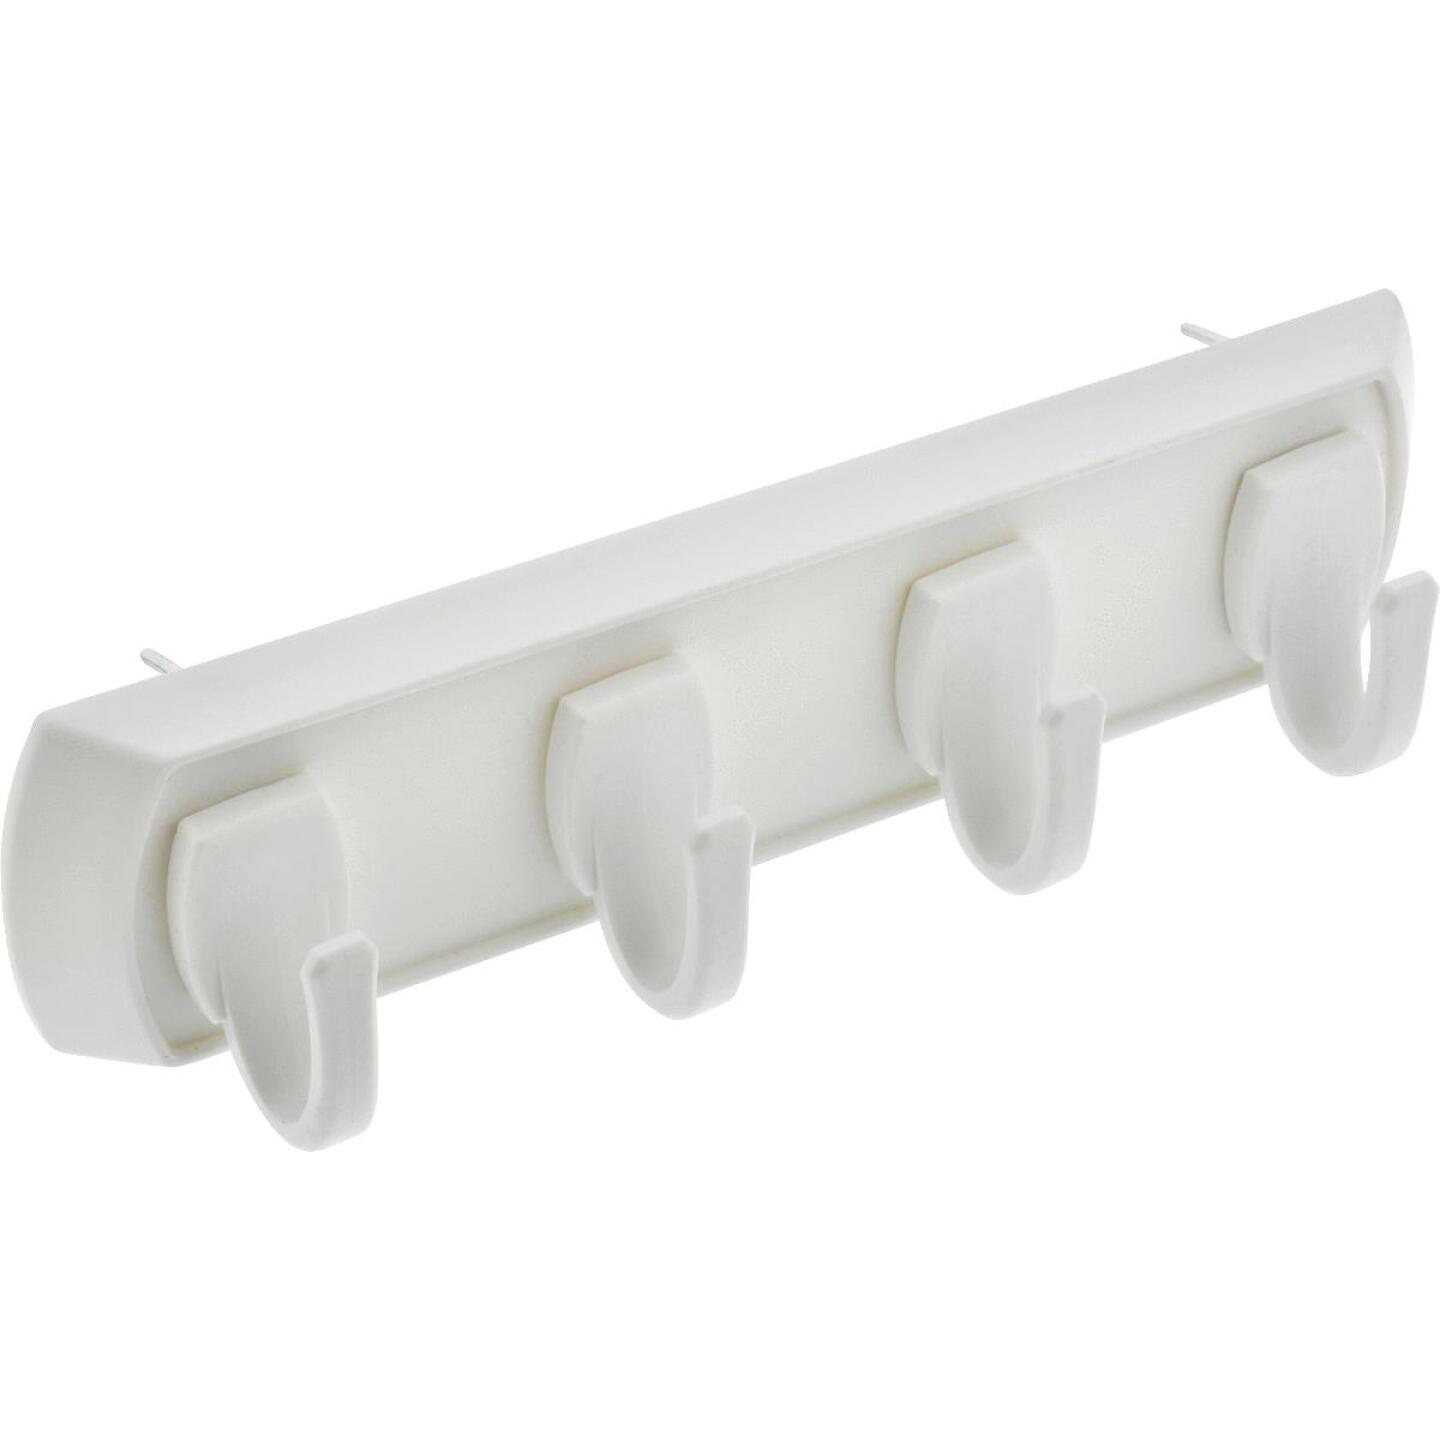 Hillman High and Mighty 5 Lb. Capacity White Key Rail Image 1